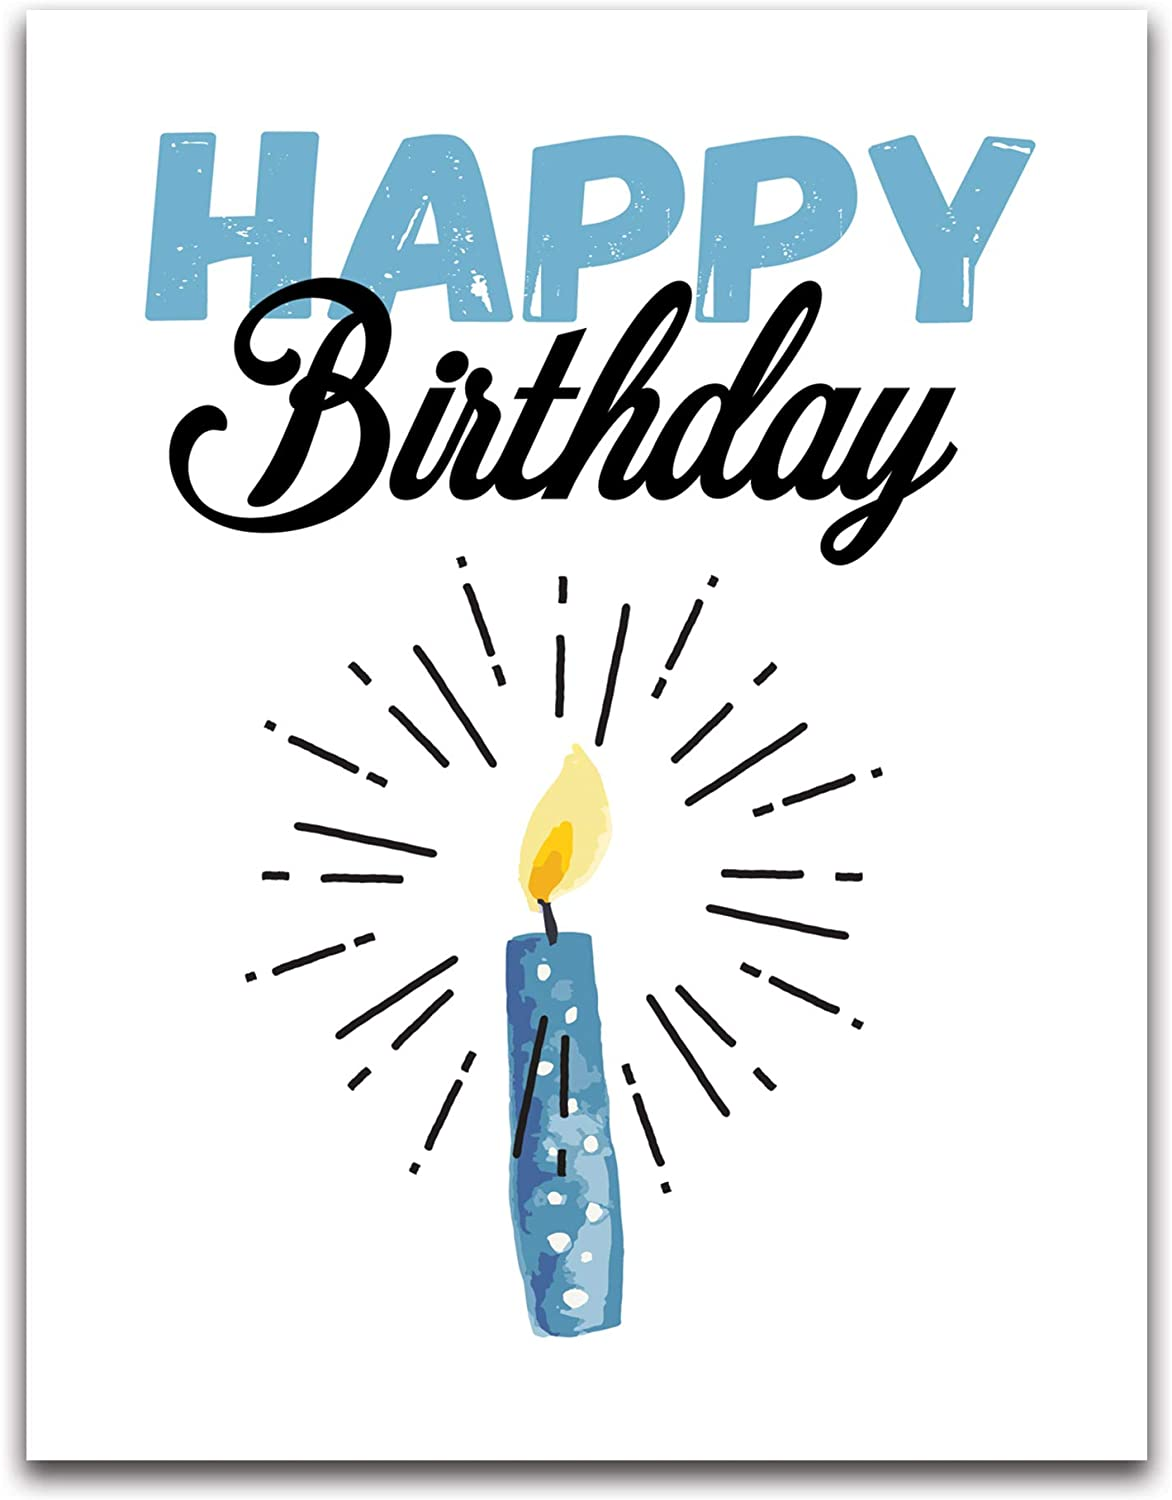 """Jumbo Extra-Large Blue Happy Birthday Greeting Card - Blank on the Inside -  With Envelope 5.5"""" x 5"""" - Single"""